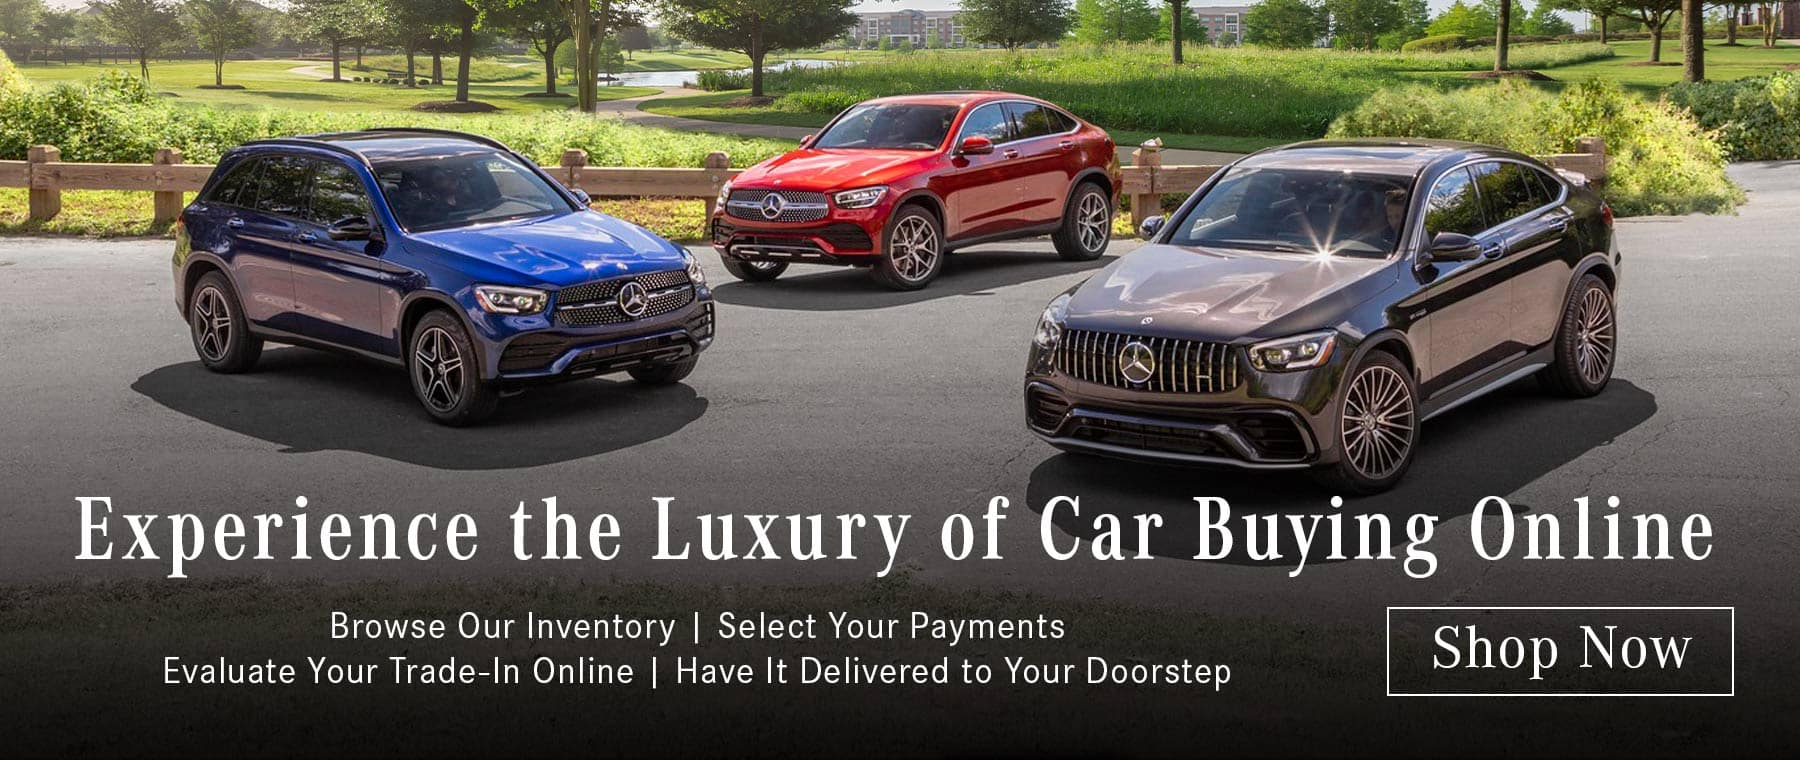 Luxurious Car Buying Experience at Mercedes-Benz